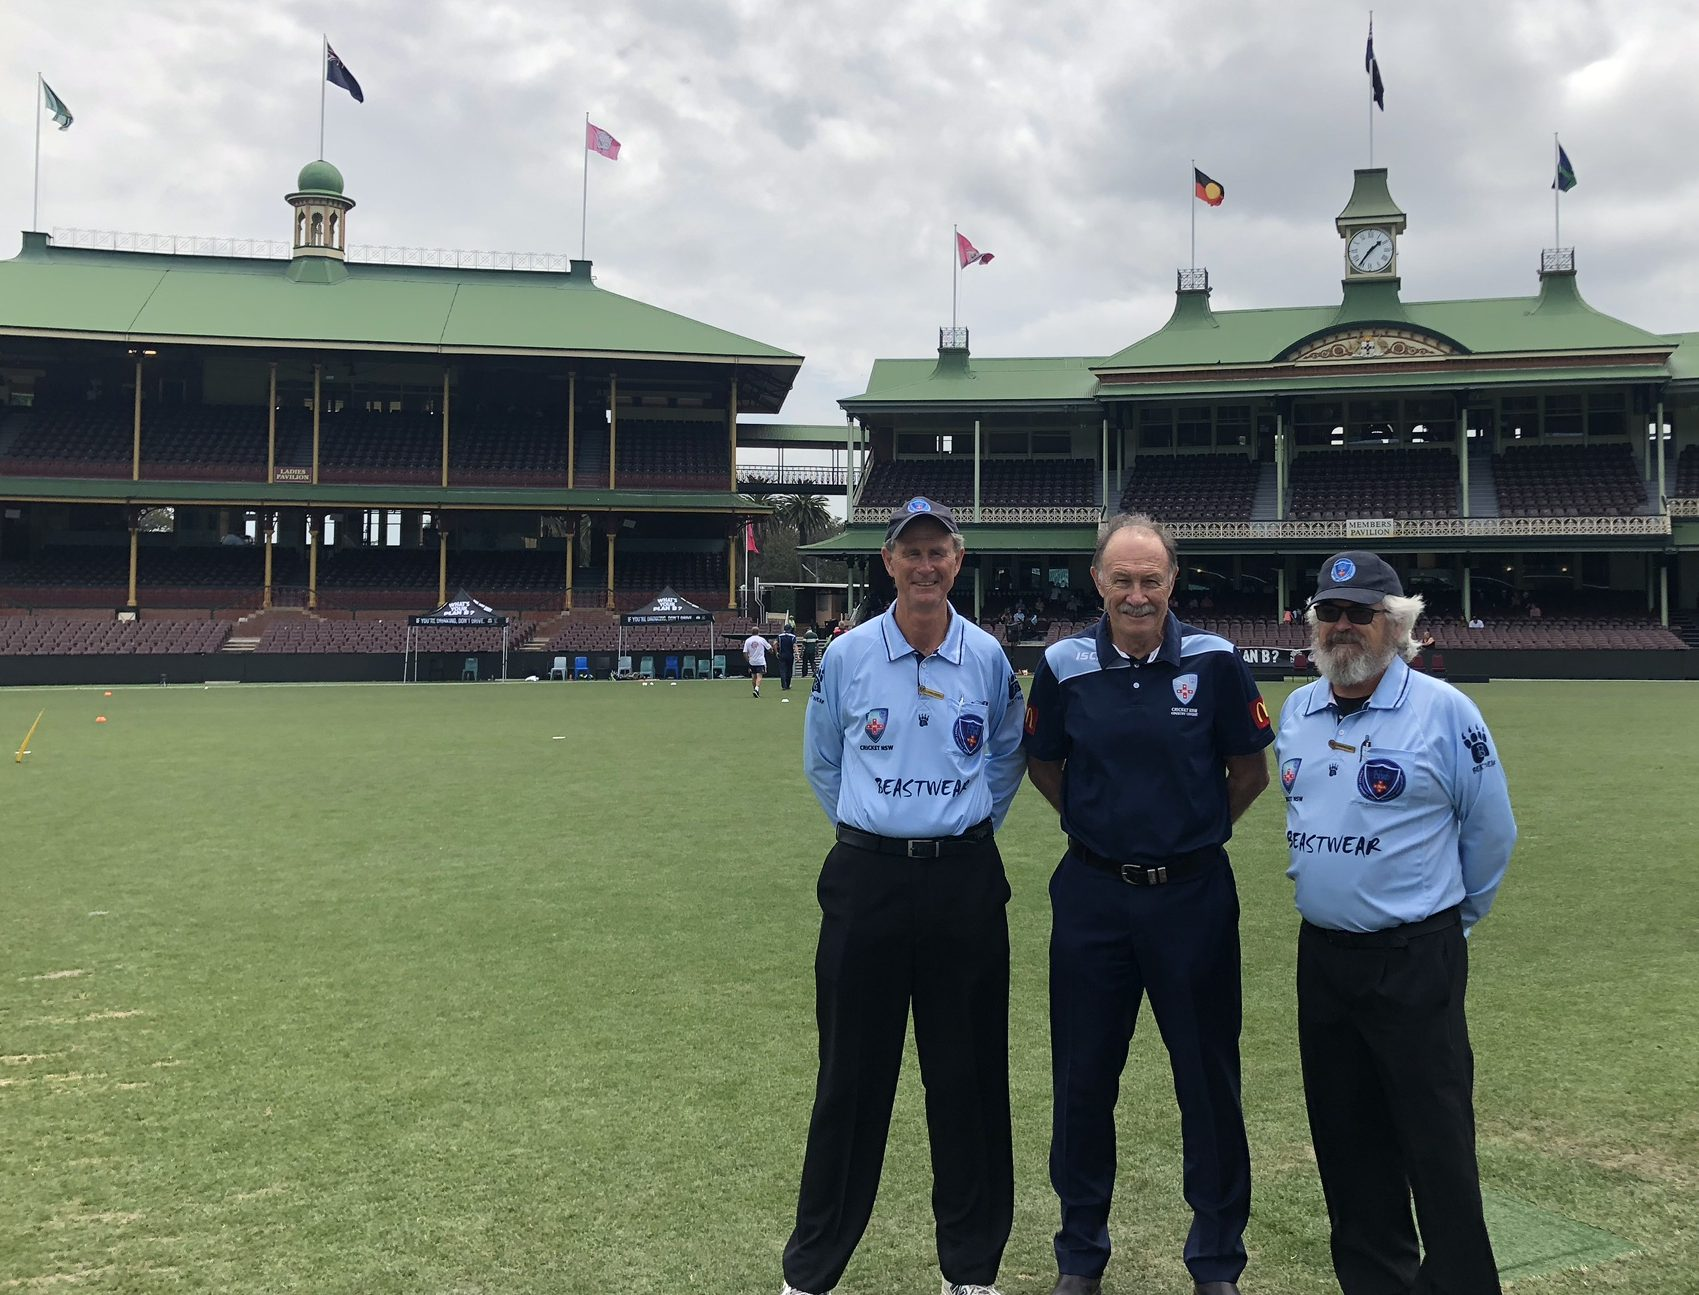 David Cullen, Neil Findlay and Ken Brooks at the SCG ahead of a Plan B Regional T20 Bash Semi-Final